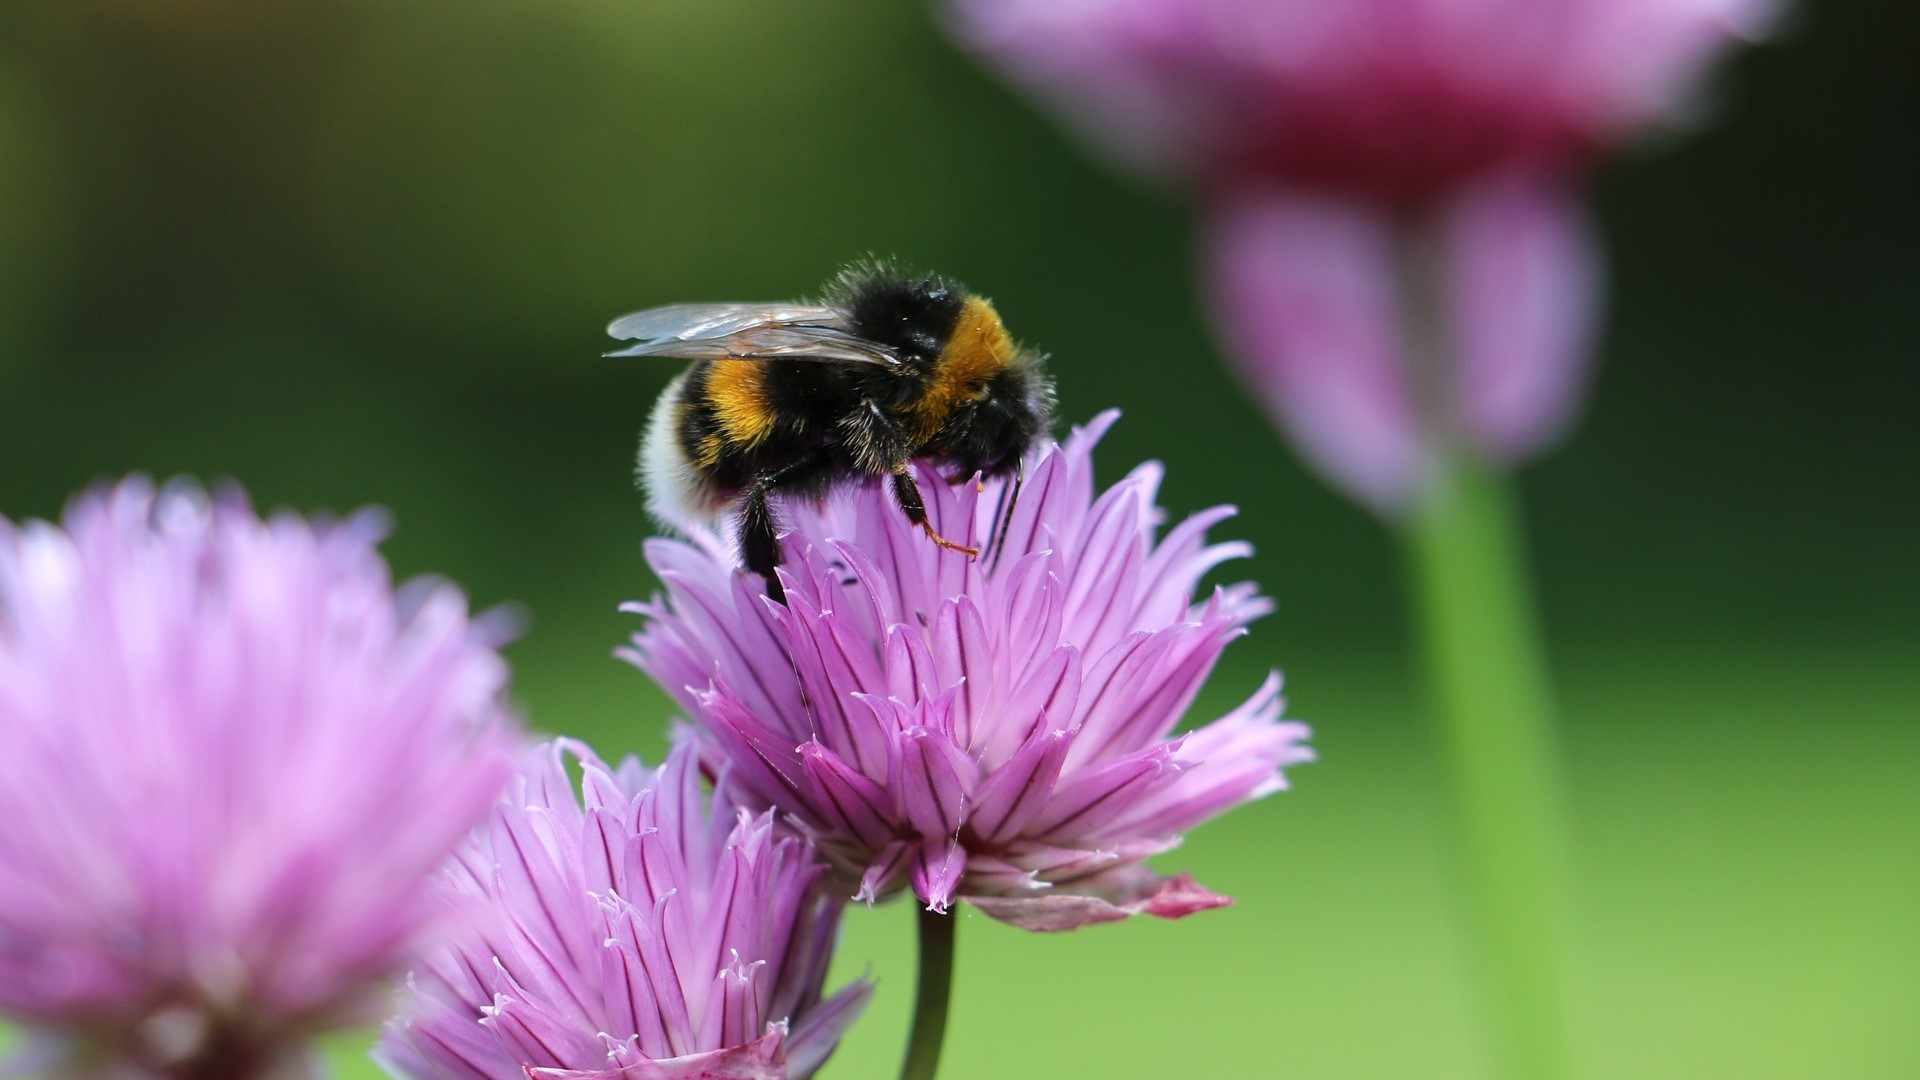 Attract Bees - Attract bumblebees - White tailed Bumblebee